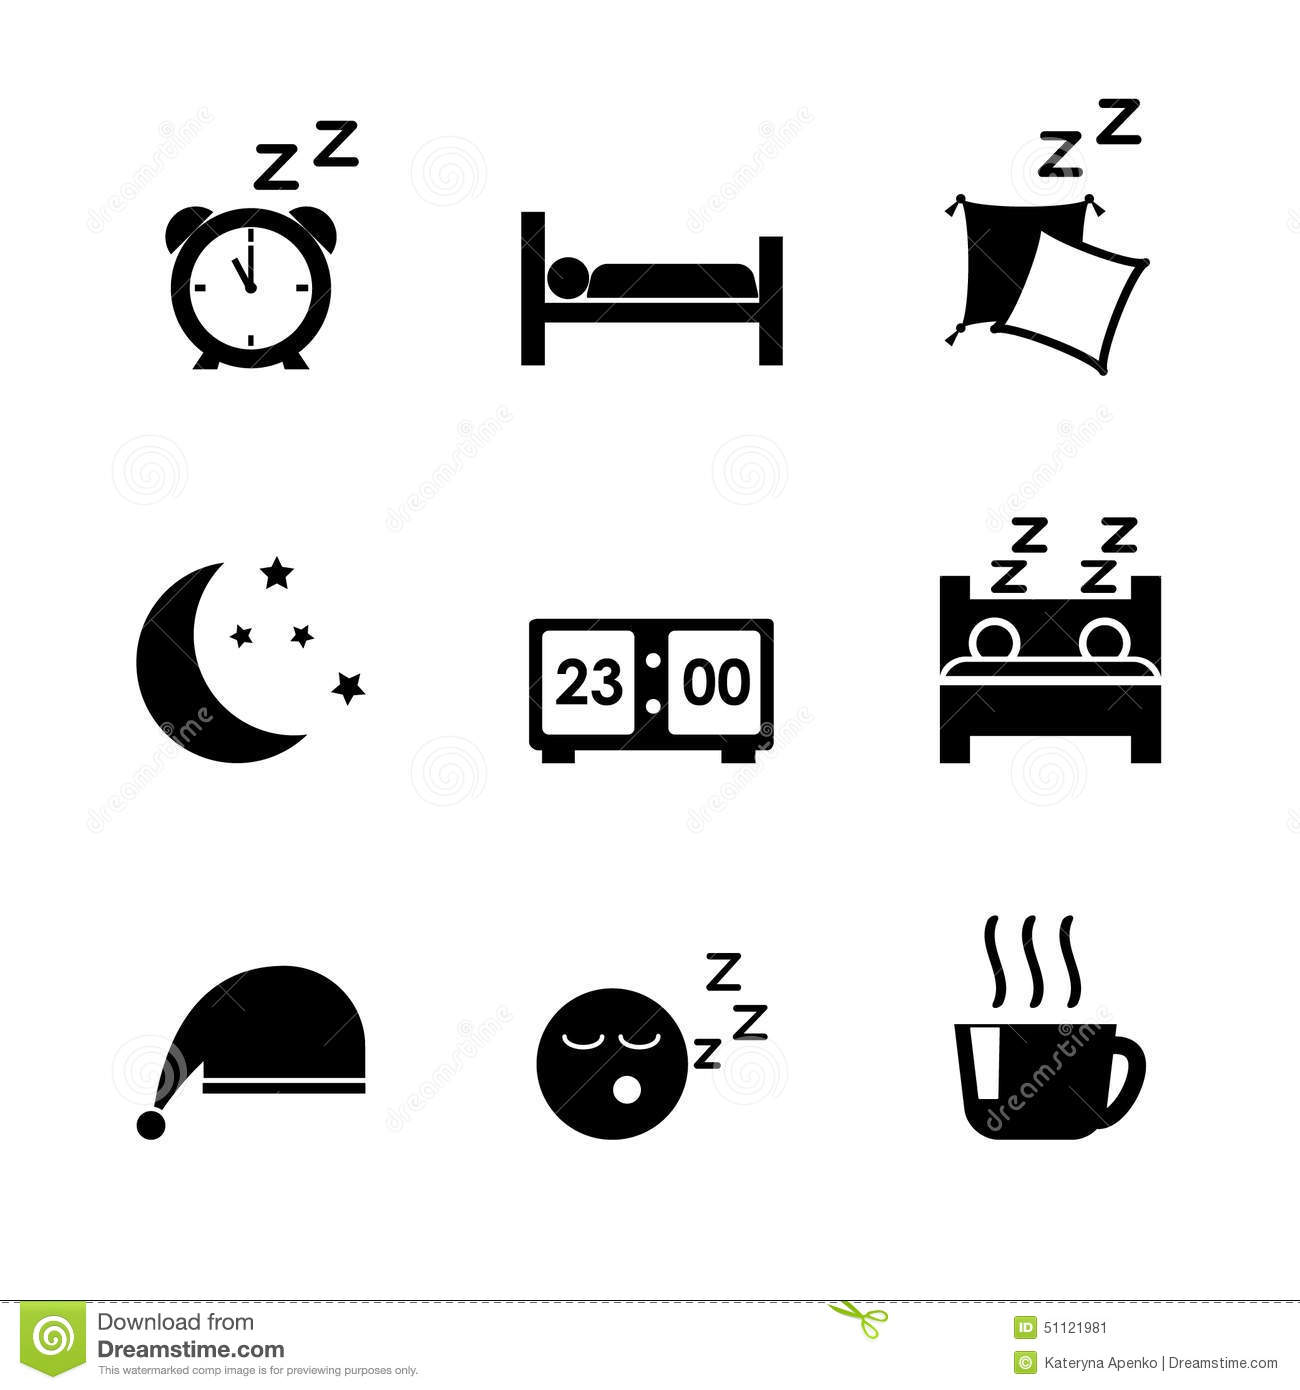 Stock Illustration Vector Sleep Concept Icons Set Bed Moon Clock Pillow Zzz Cup Coffee Tea Isolated White Image51121981 also Small Lake House Floor Plans Room Ideas Renovation Simple On Small Lake House Floor Plans Home Ideas besides Superb House Plans With Pools 7 Small Pool House Floor Plans besides Meubles Lin C3 A9aire Vecteur Symbols Plancher Plan Ic C3 B4nes Ensemble 31240135 together with Ac modations. on 7 bedroom house plans